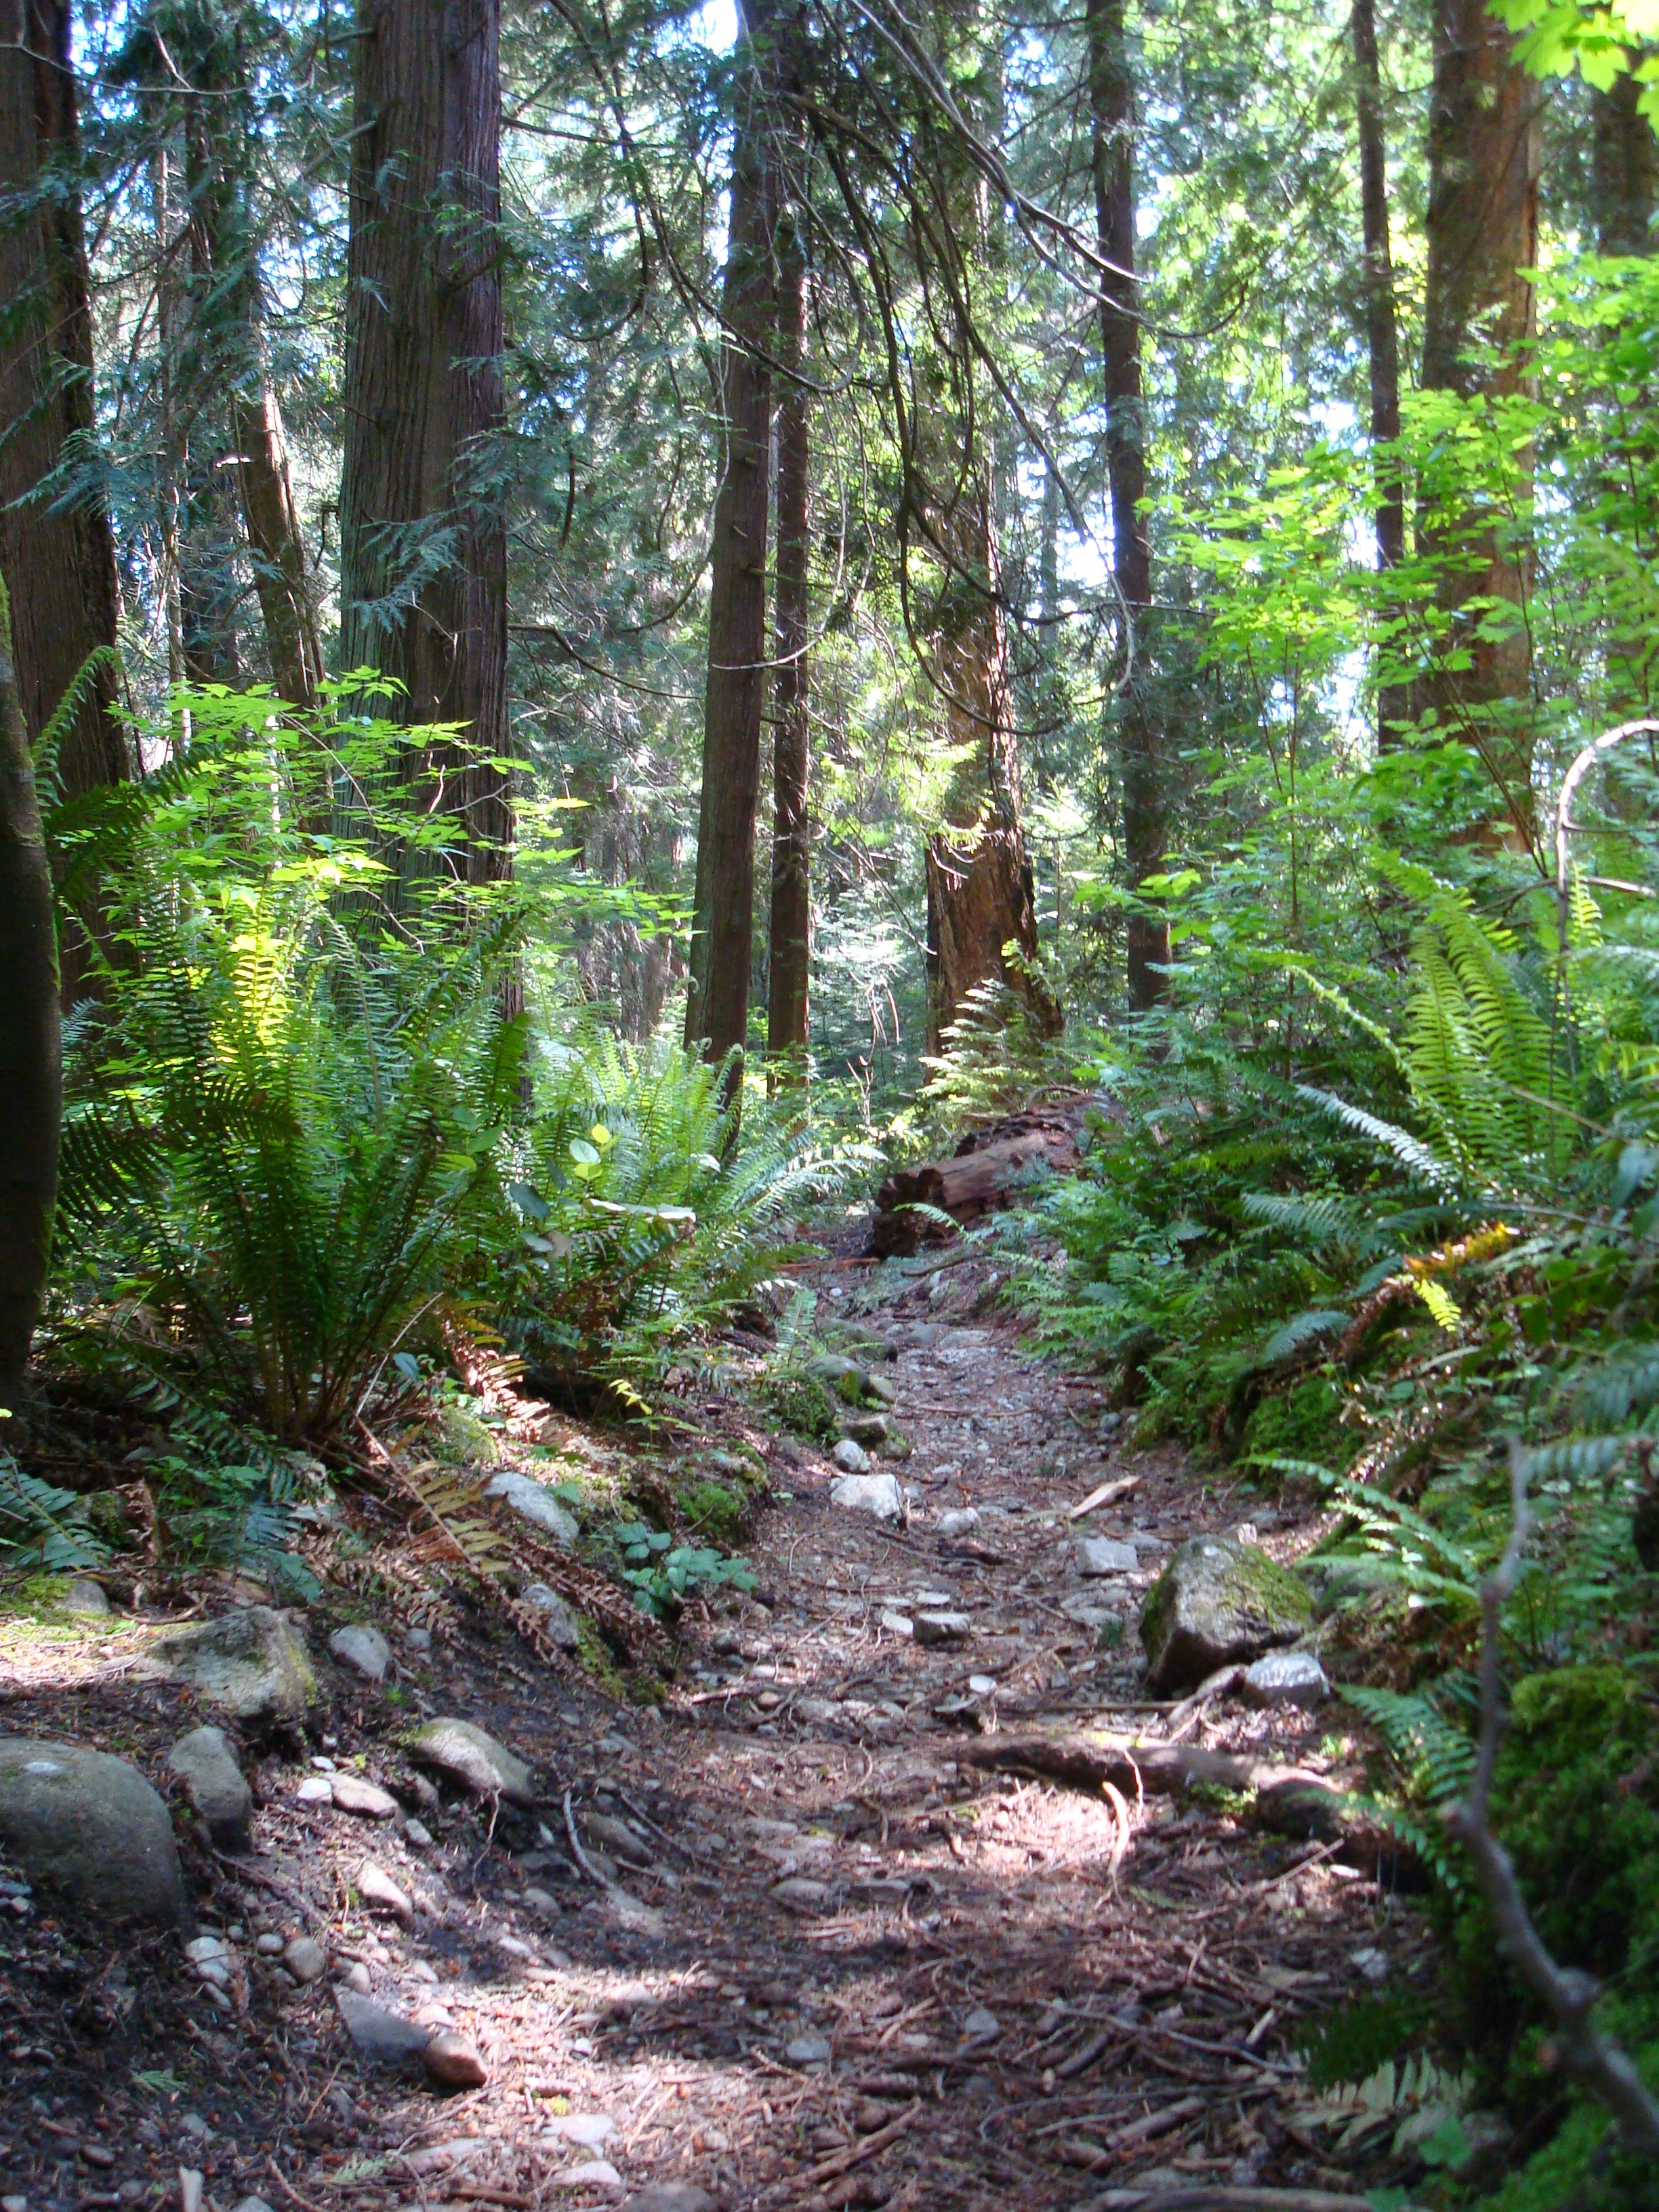 Natural Parenting and Hiking With Young Children